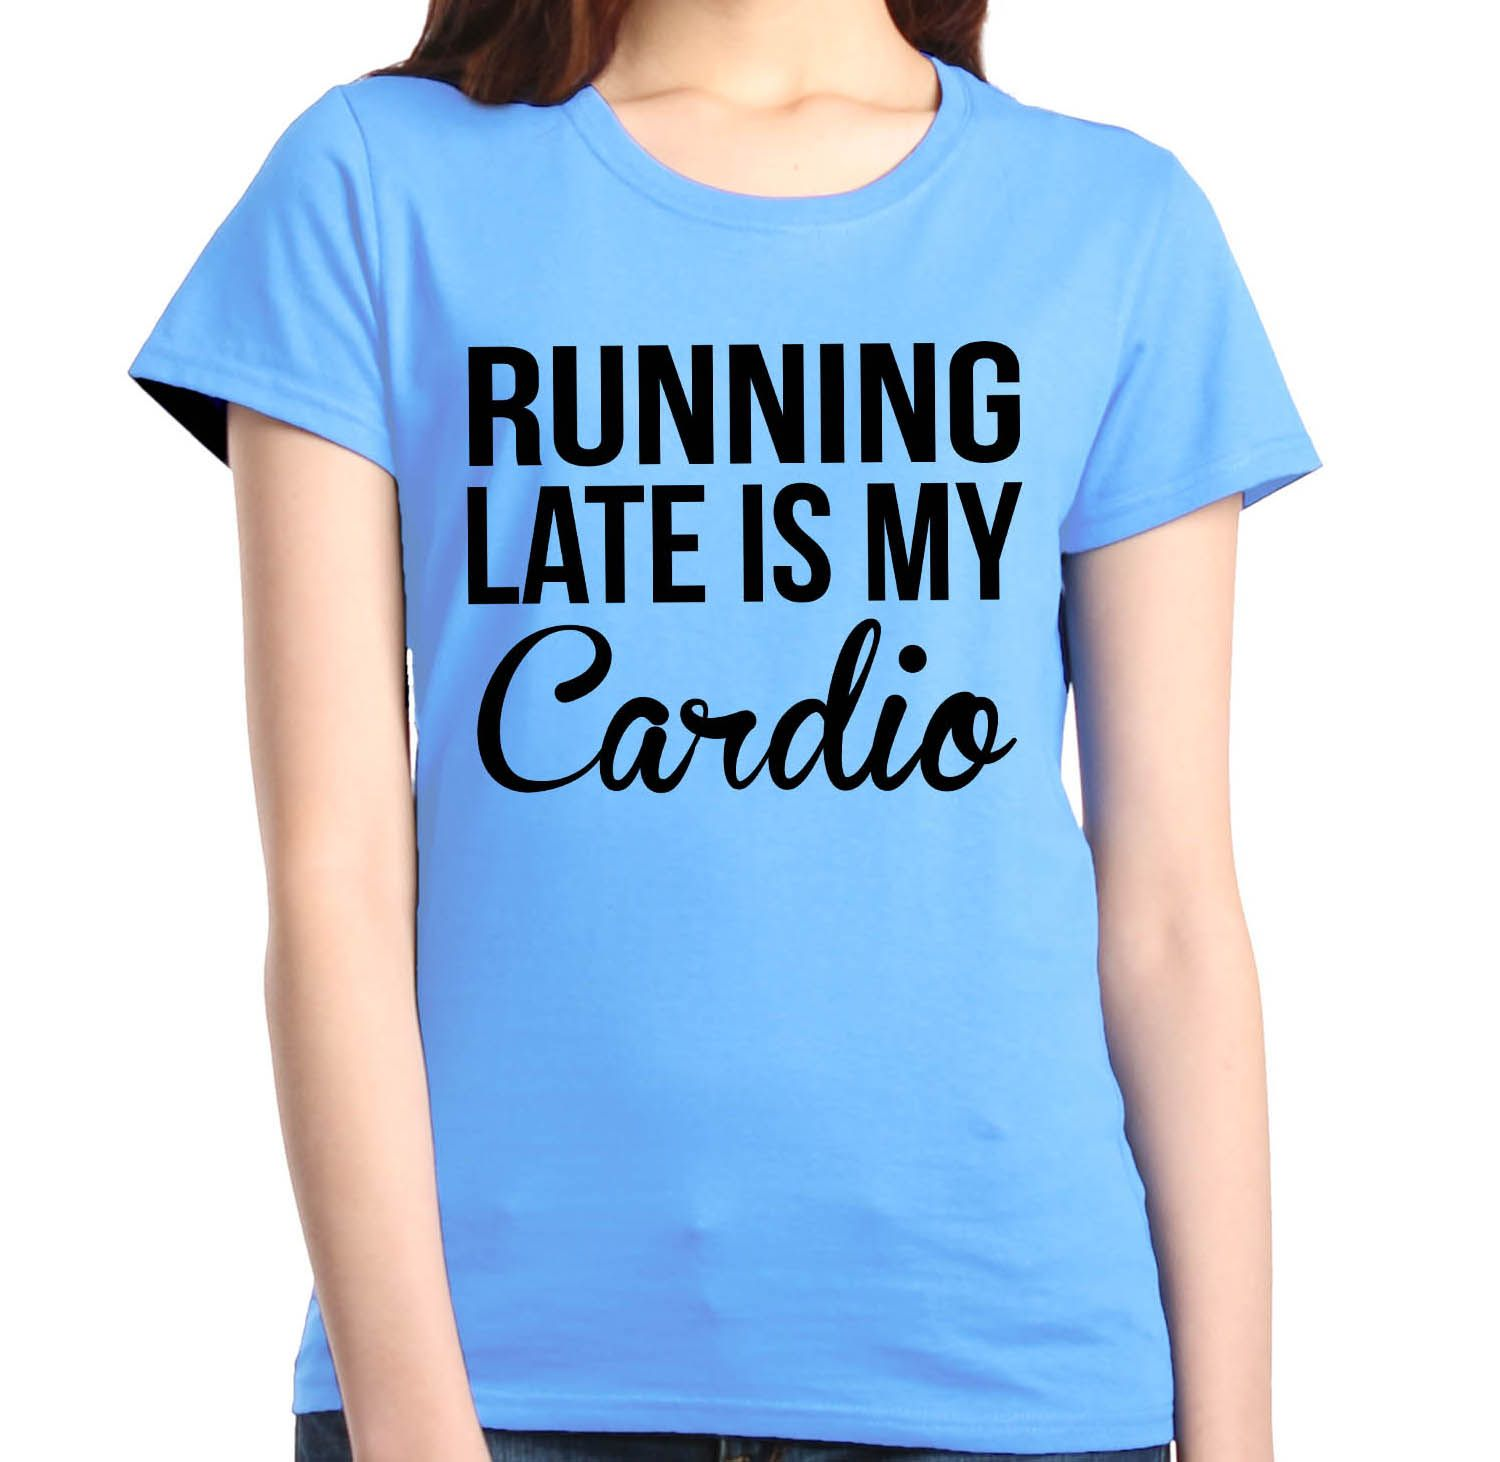 fd3a8f1c3 Funny Running Sayings For Shirts – EDGE Engineering and Consulting ...